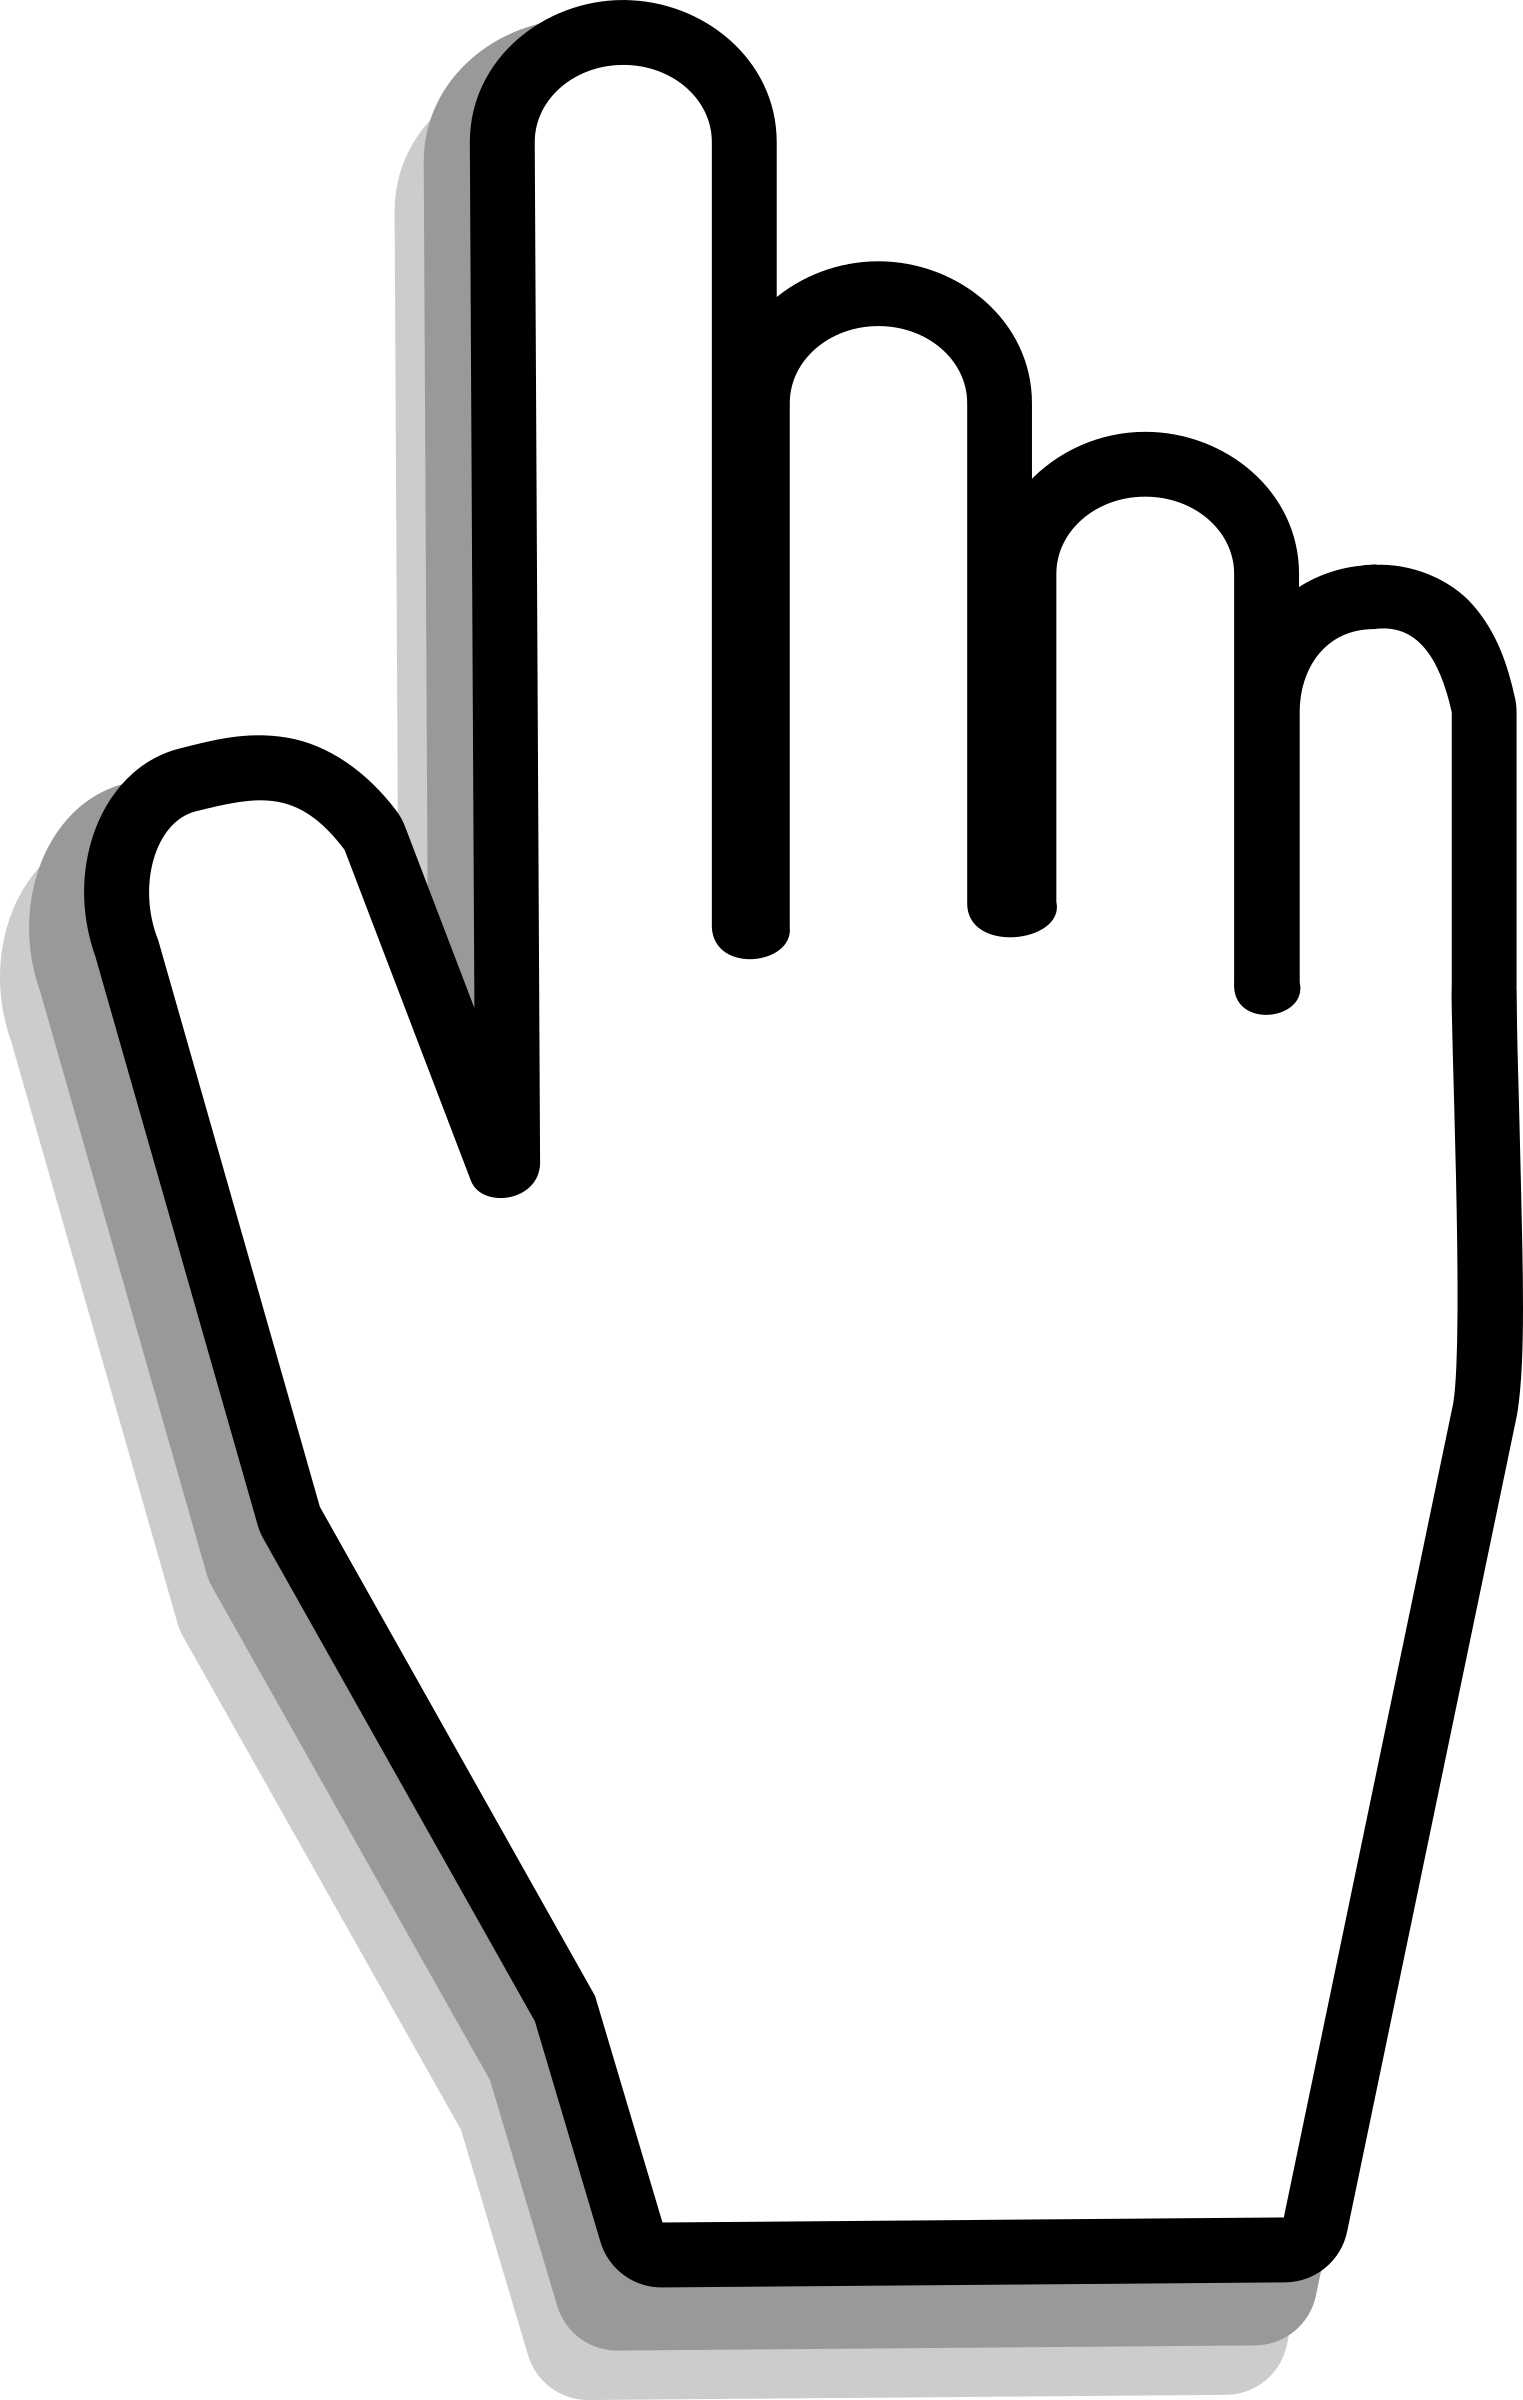 Fingers clipart two. Select gallery images hand